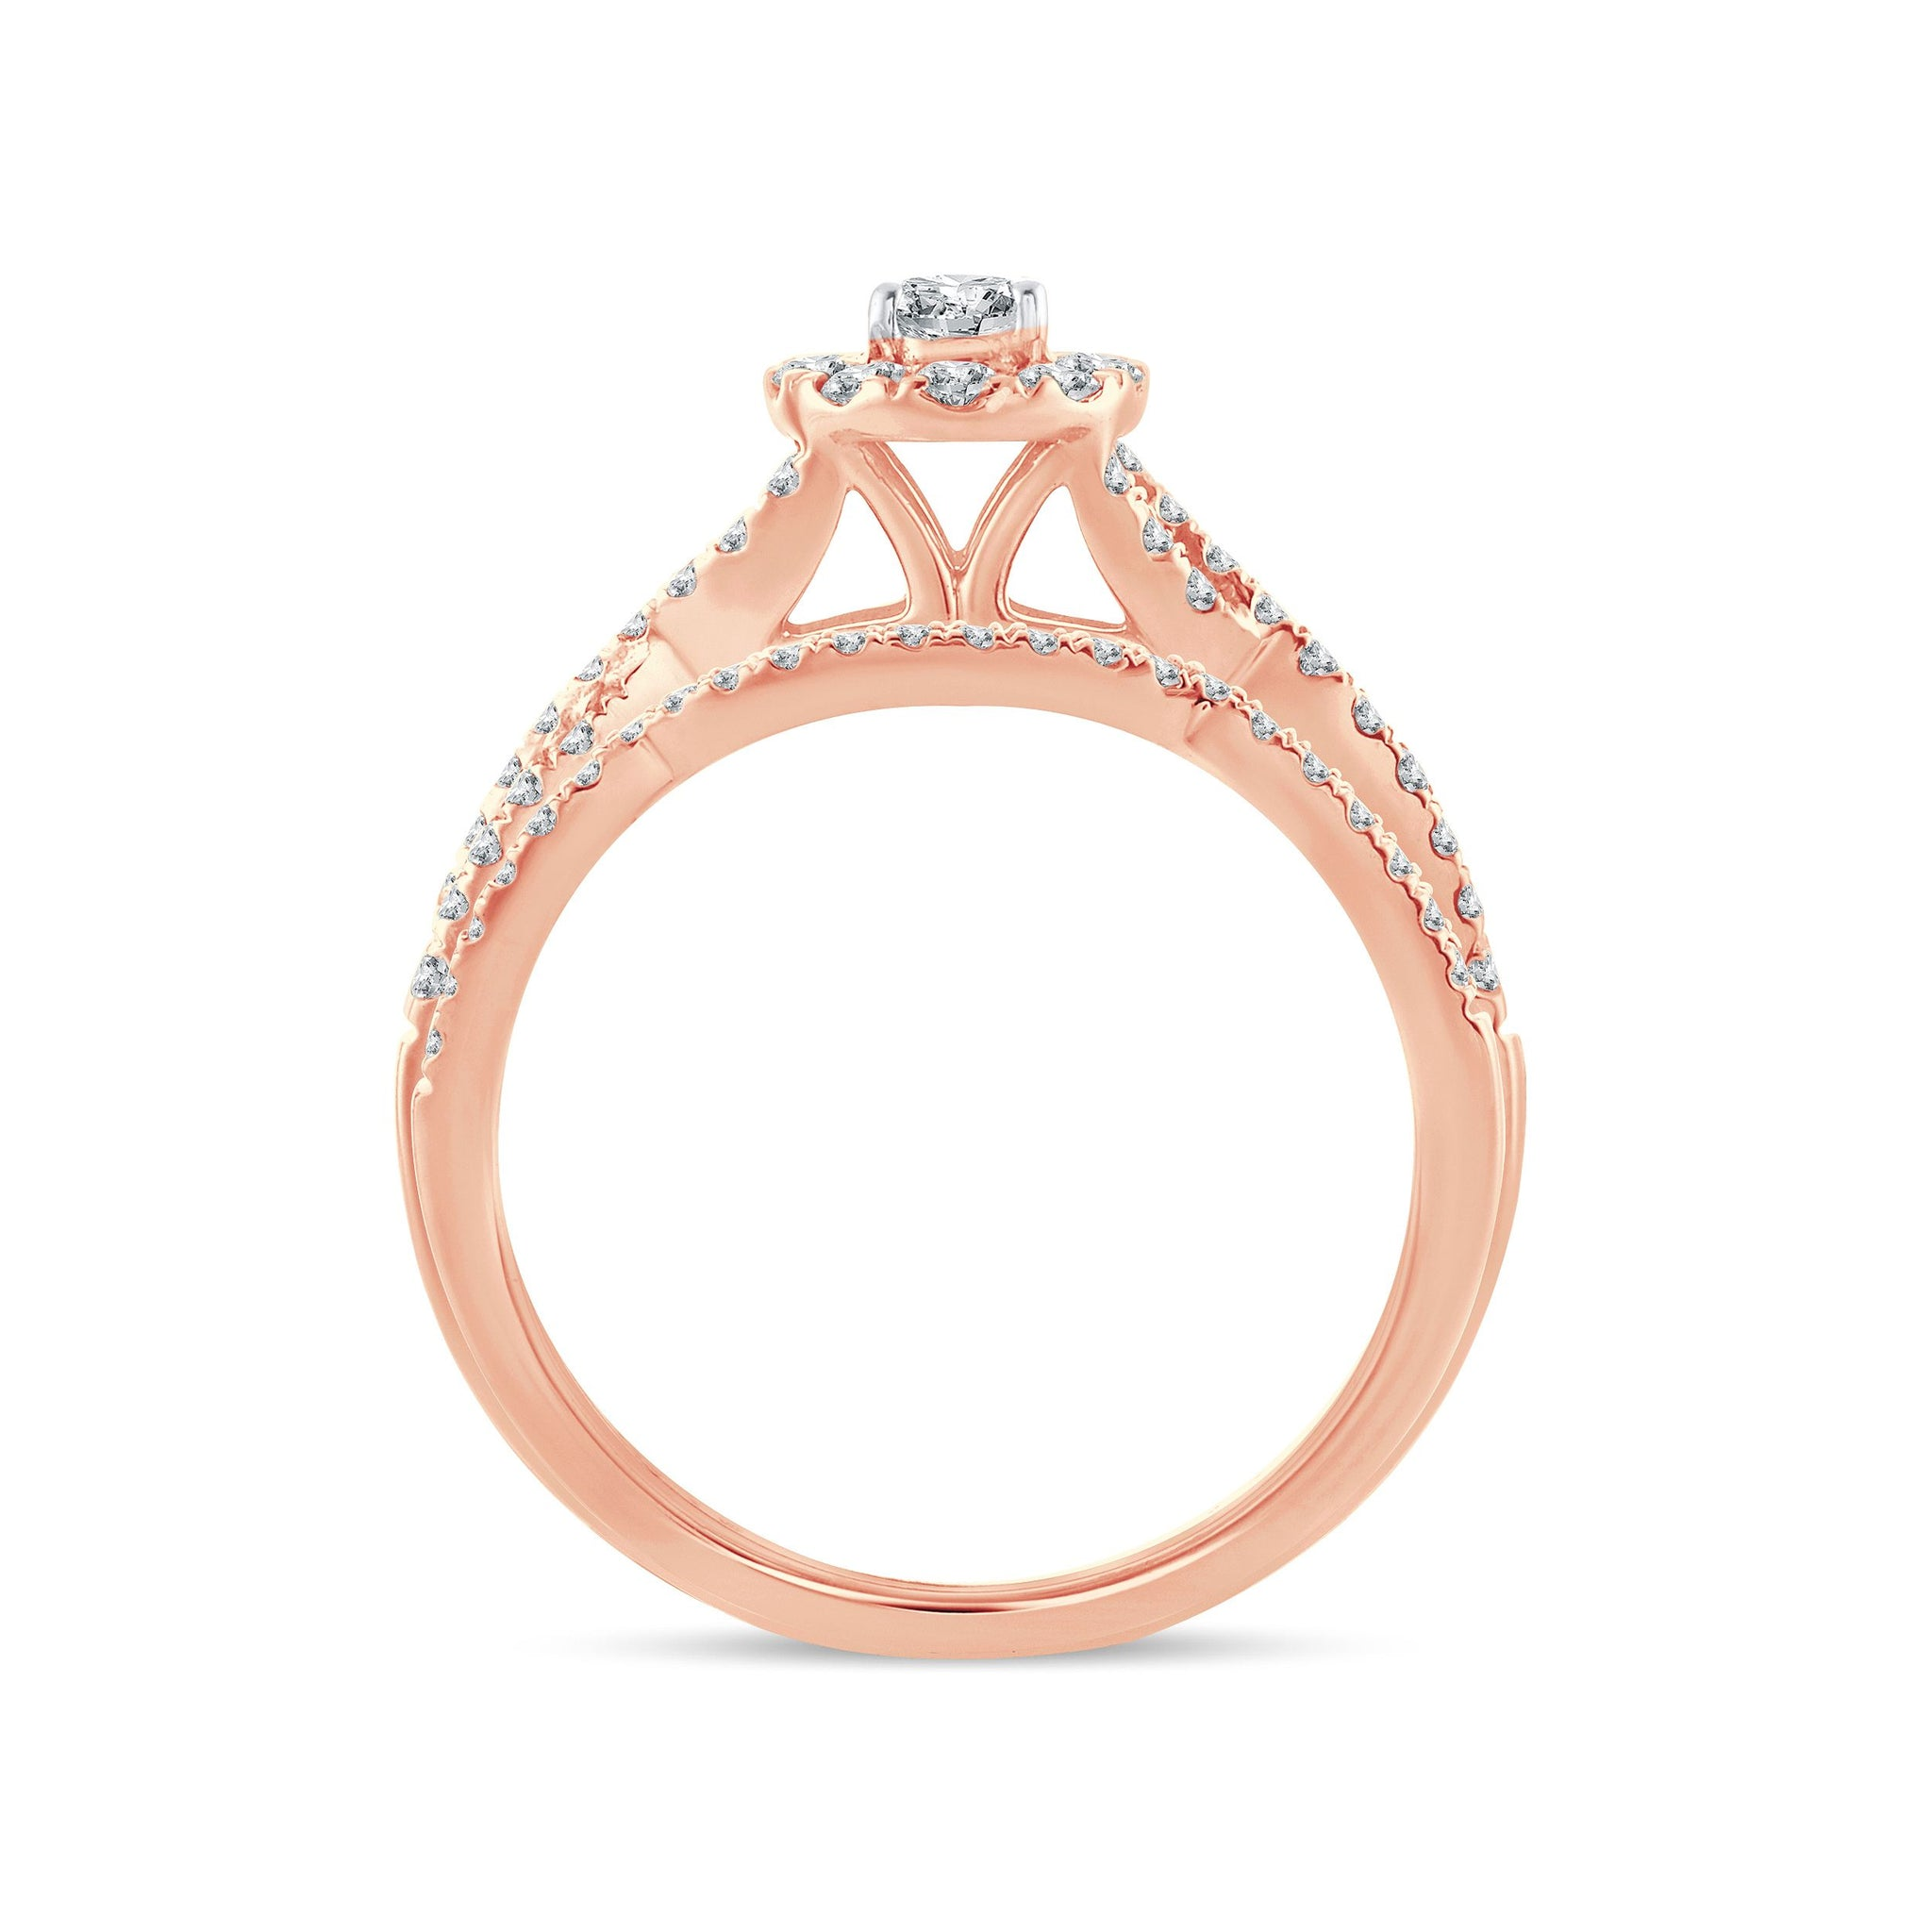 Diamond Engagement Ring with Band 0.74 Carats 14KT Rose Gold